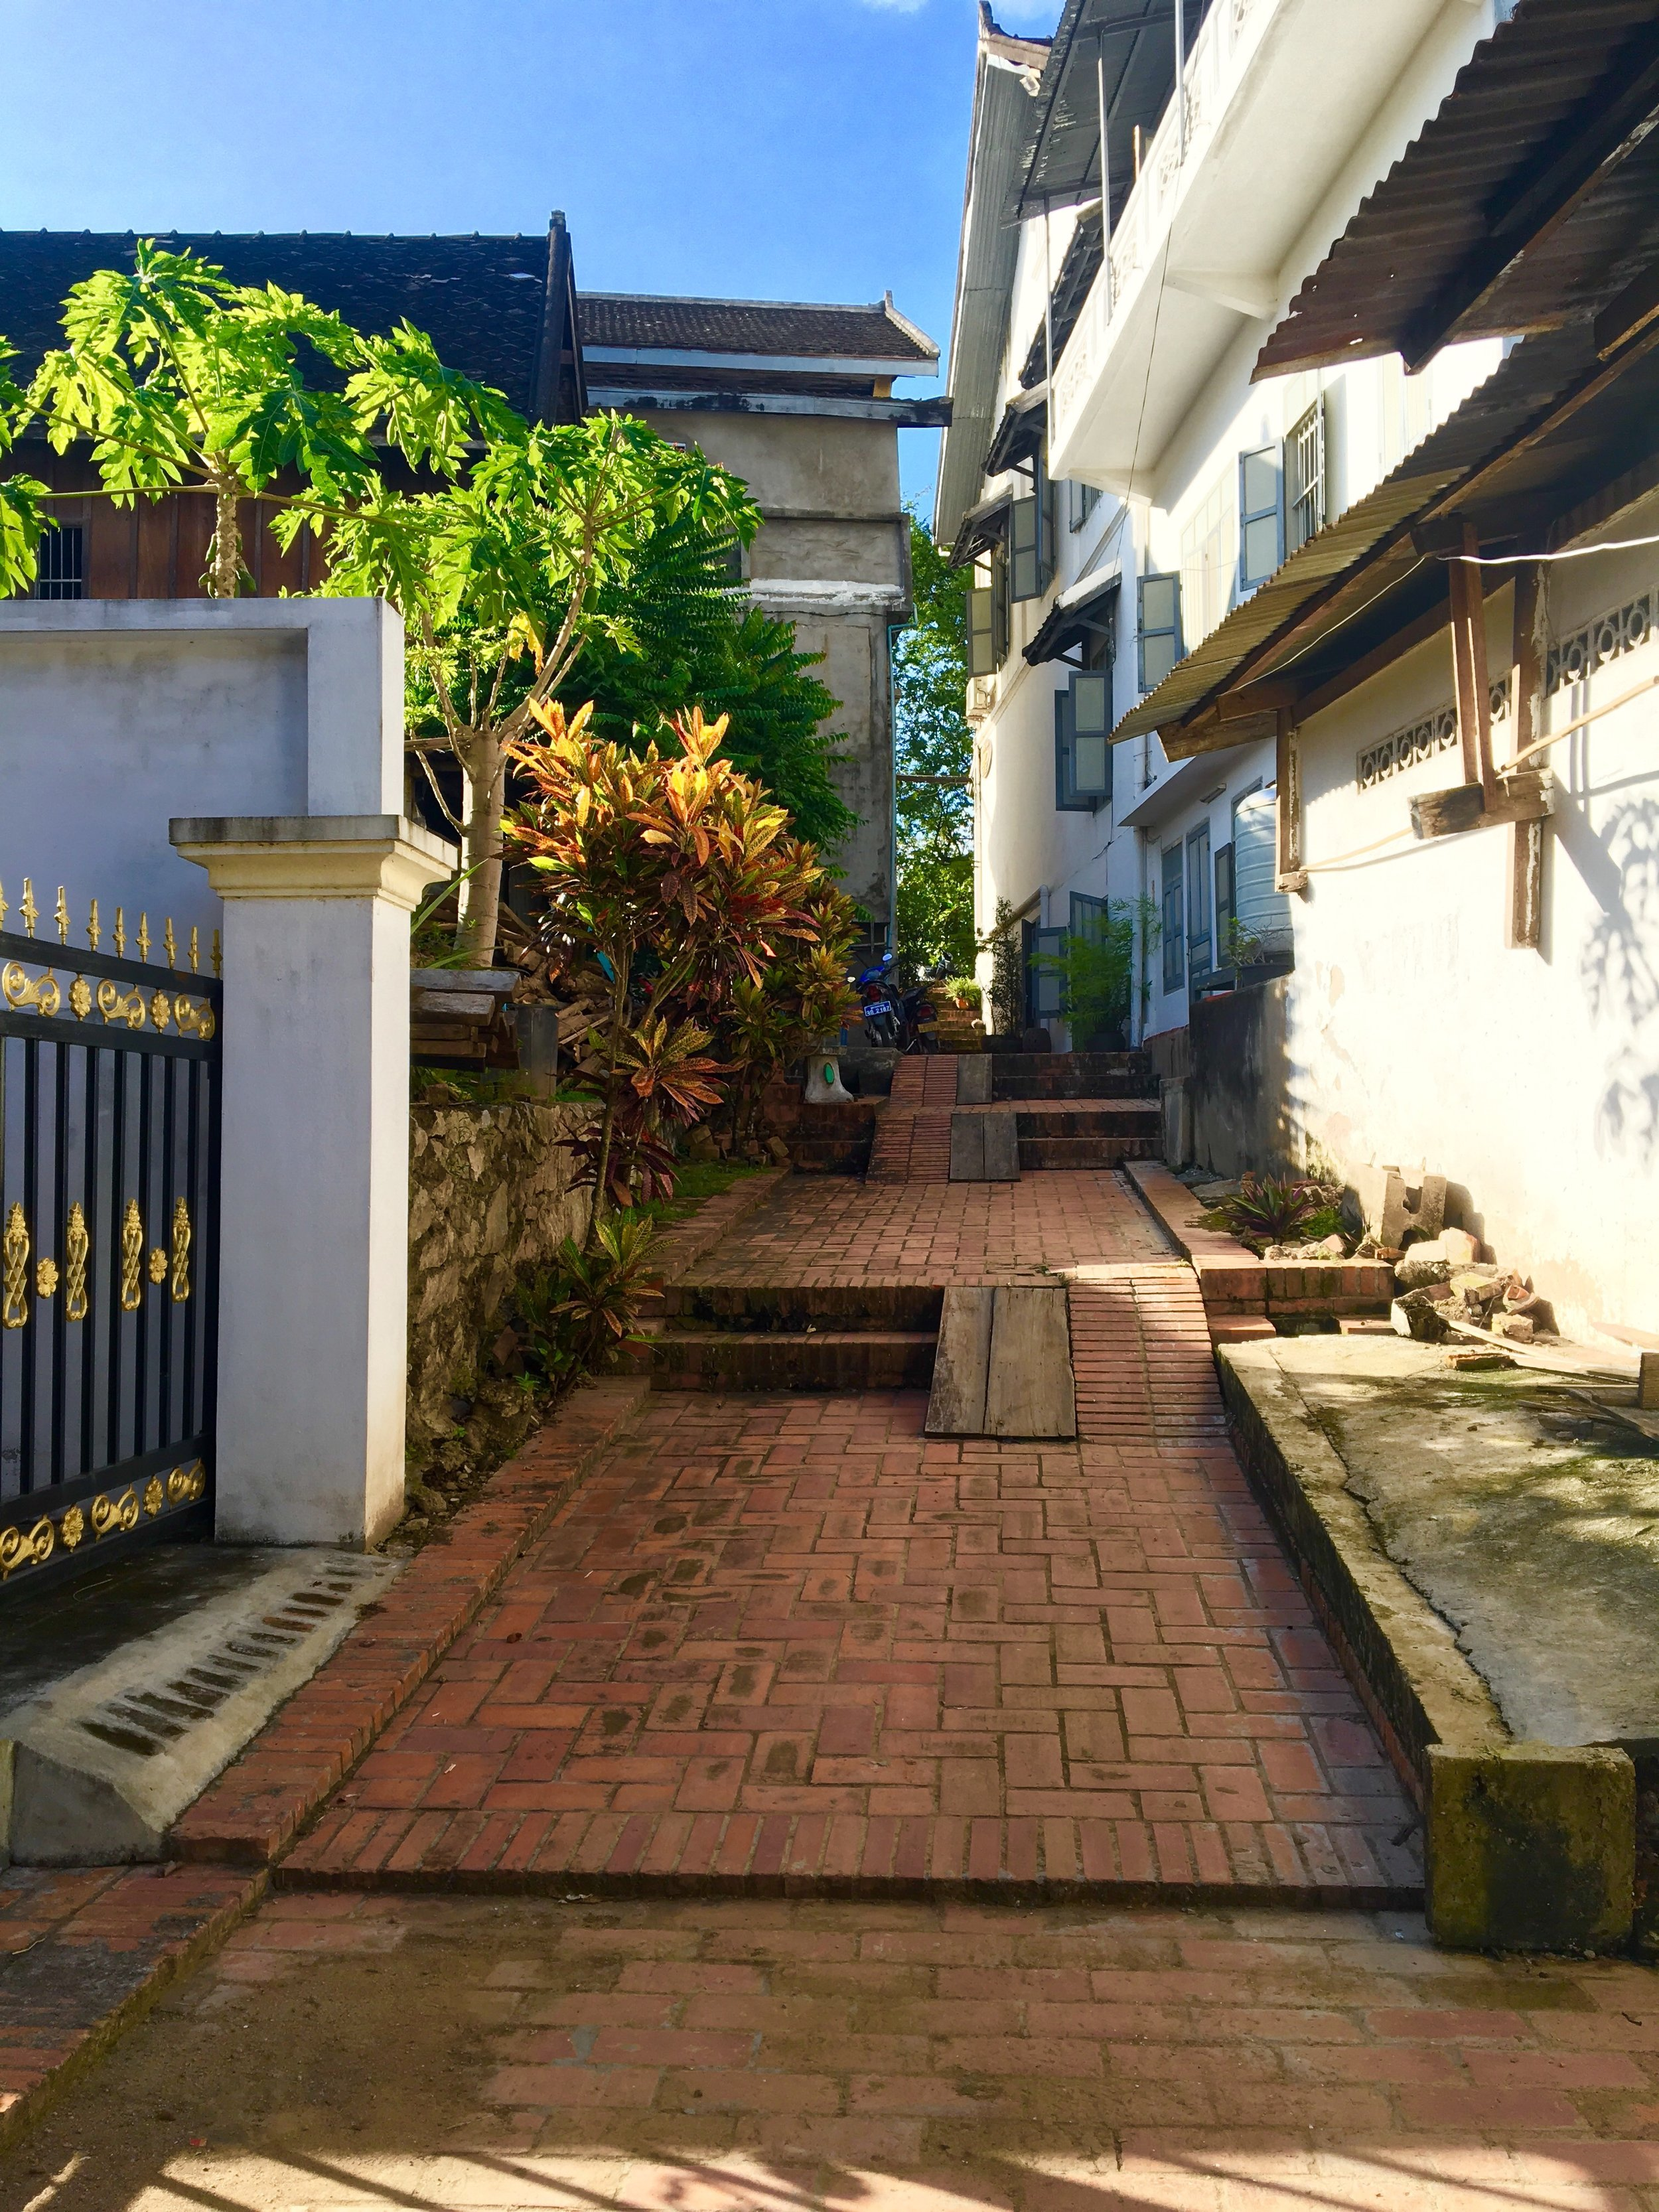 A little alley in Luang Prabang